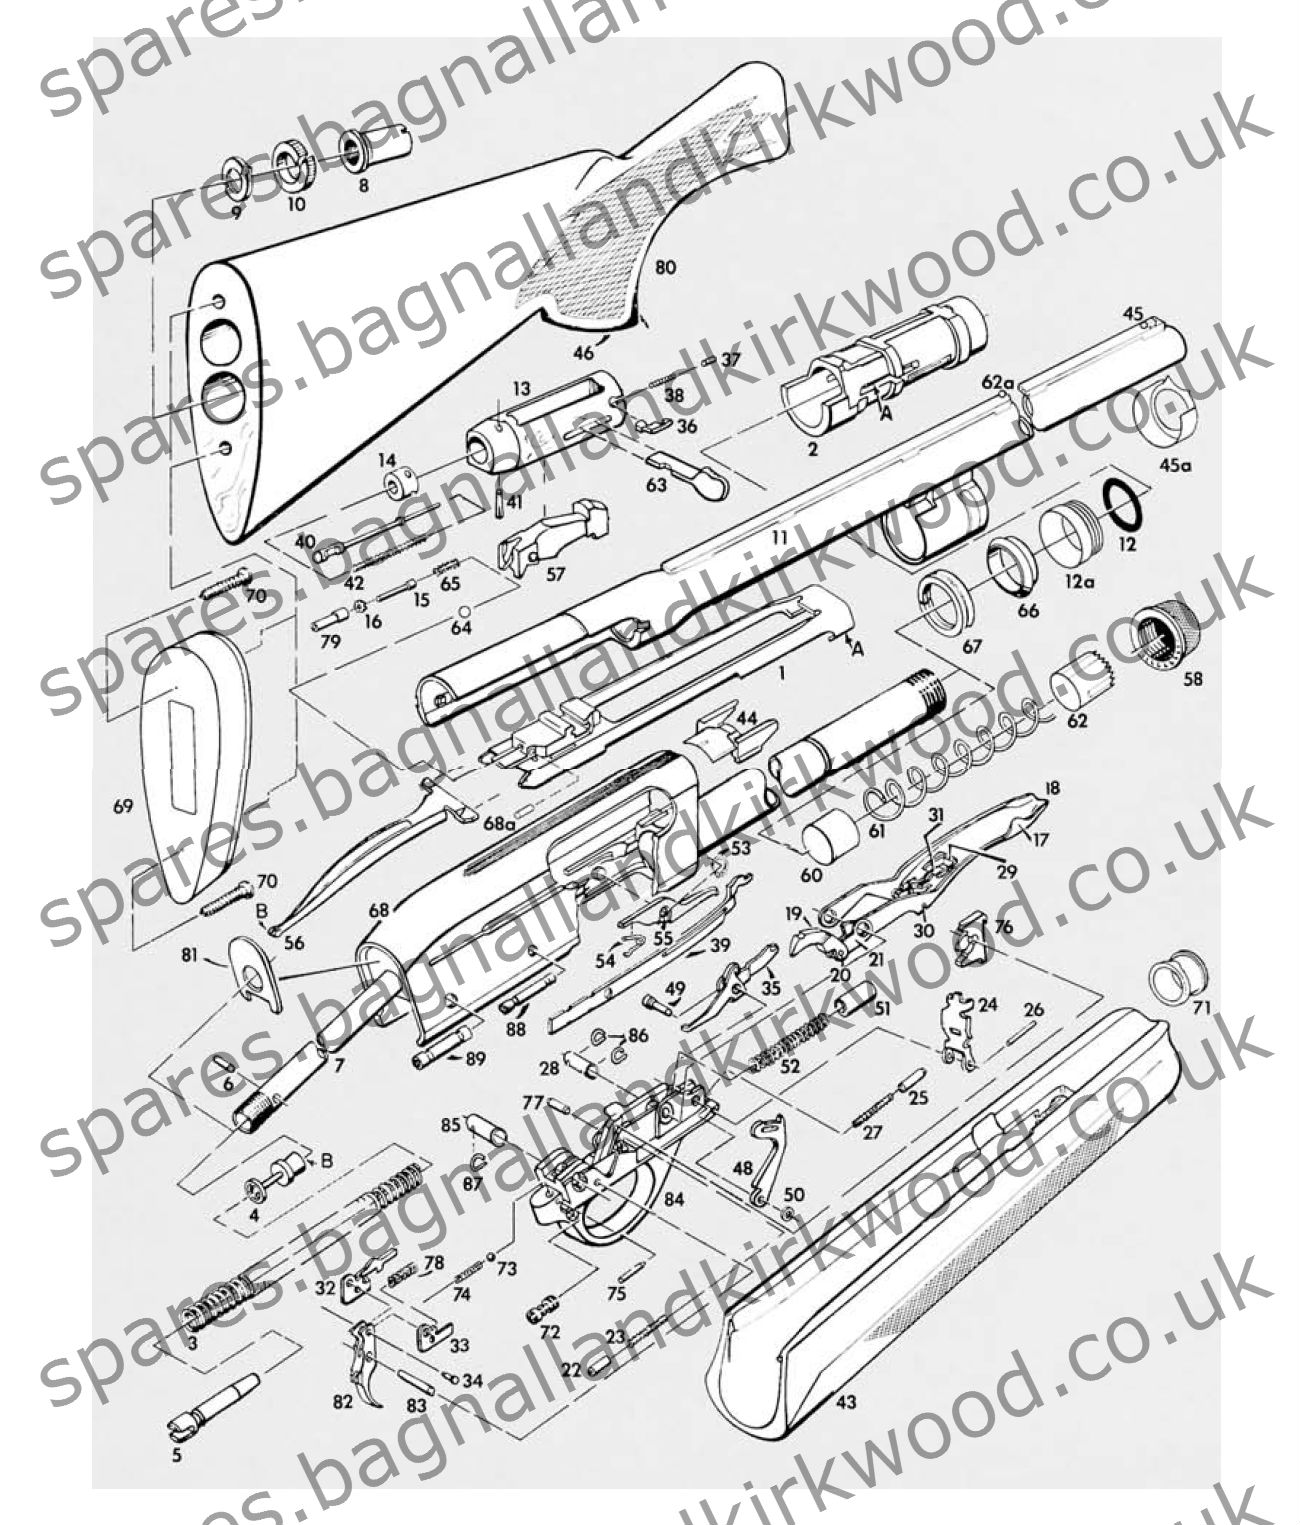 remington 1187 spare parts bagnall and kirkwood airgun spares rh spares bagnallandkirkwood co uk Remington 11-87 Disassembly Diagram Remington 11-87 Disassembly Diagram